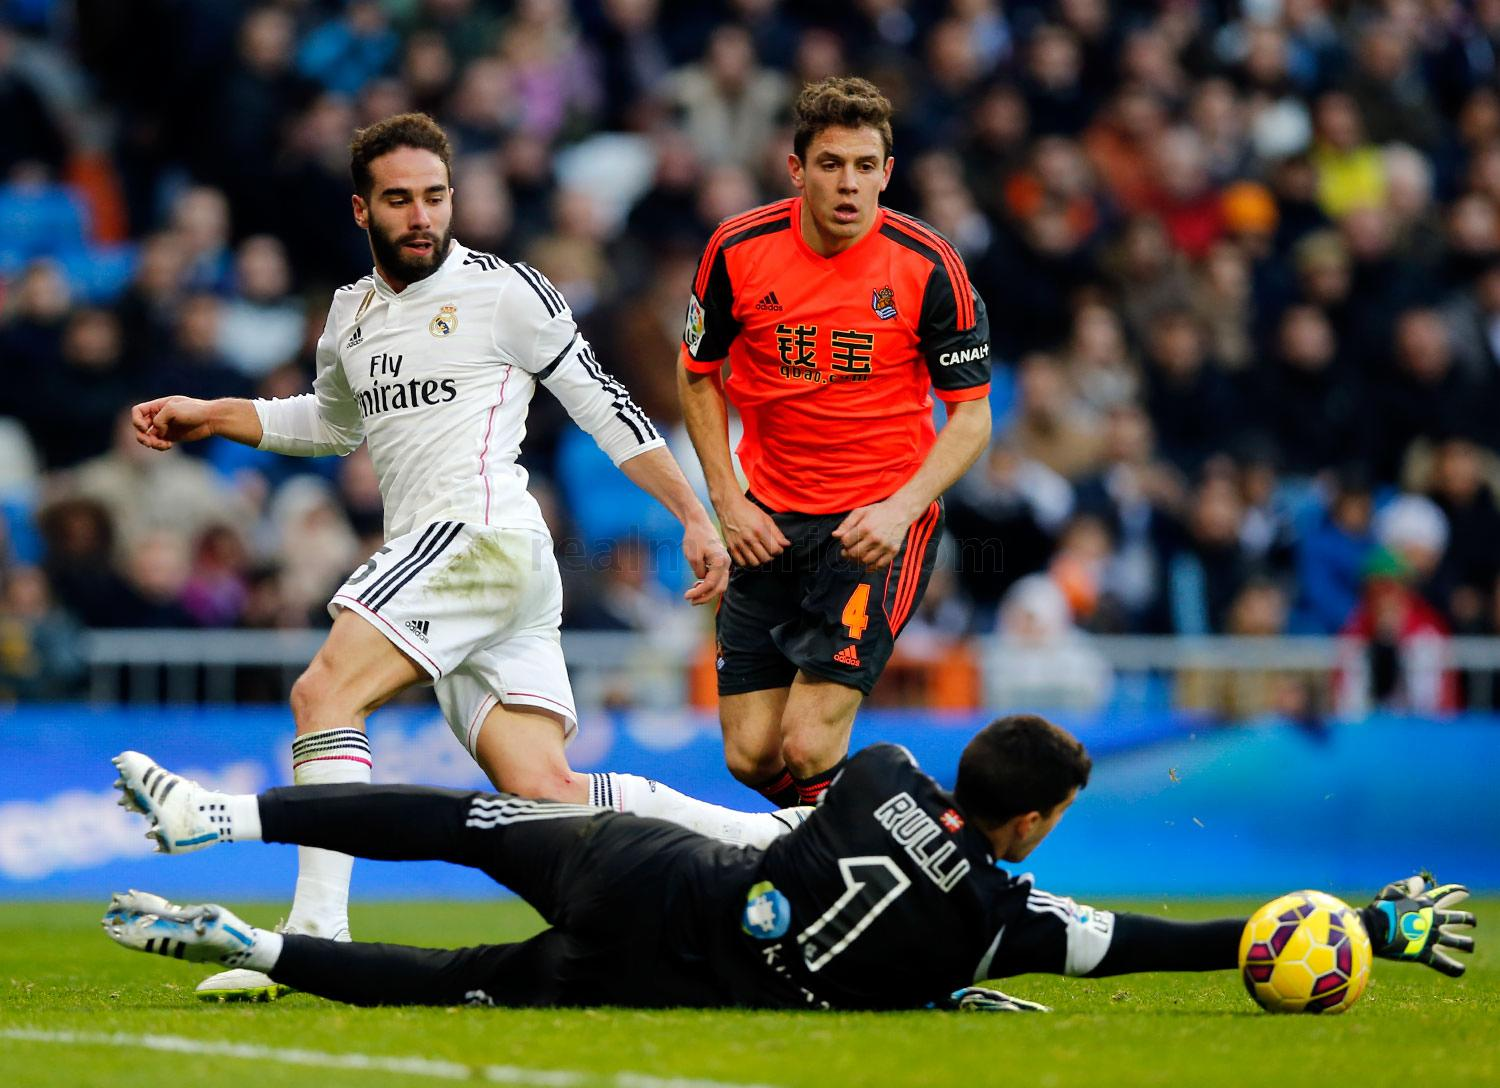 Real Madrid - Real Madrid - Real Sociedad - 31-01-2015